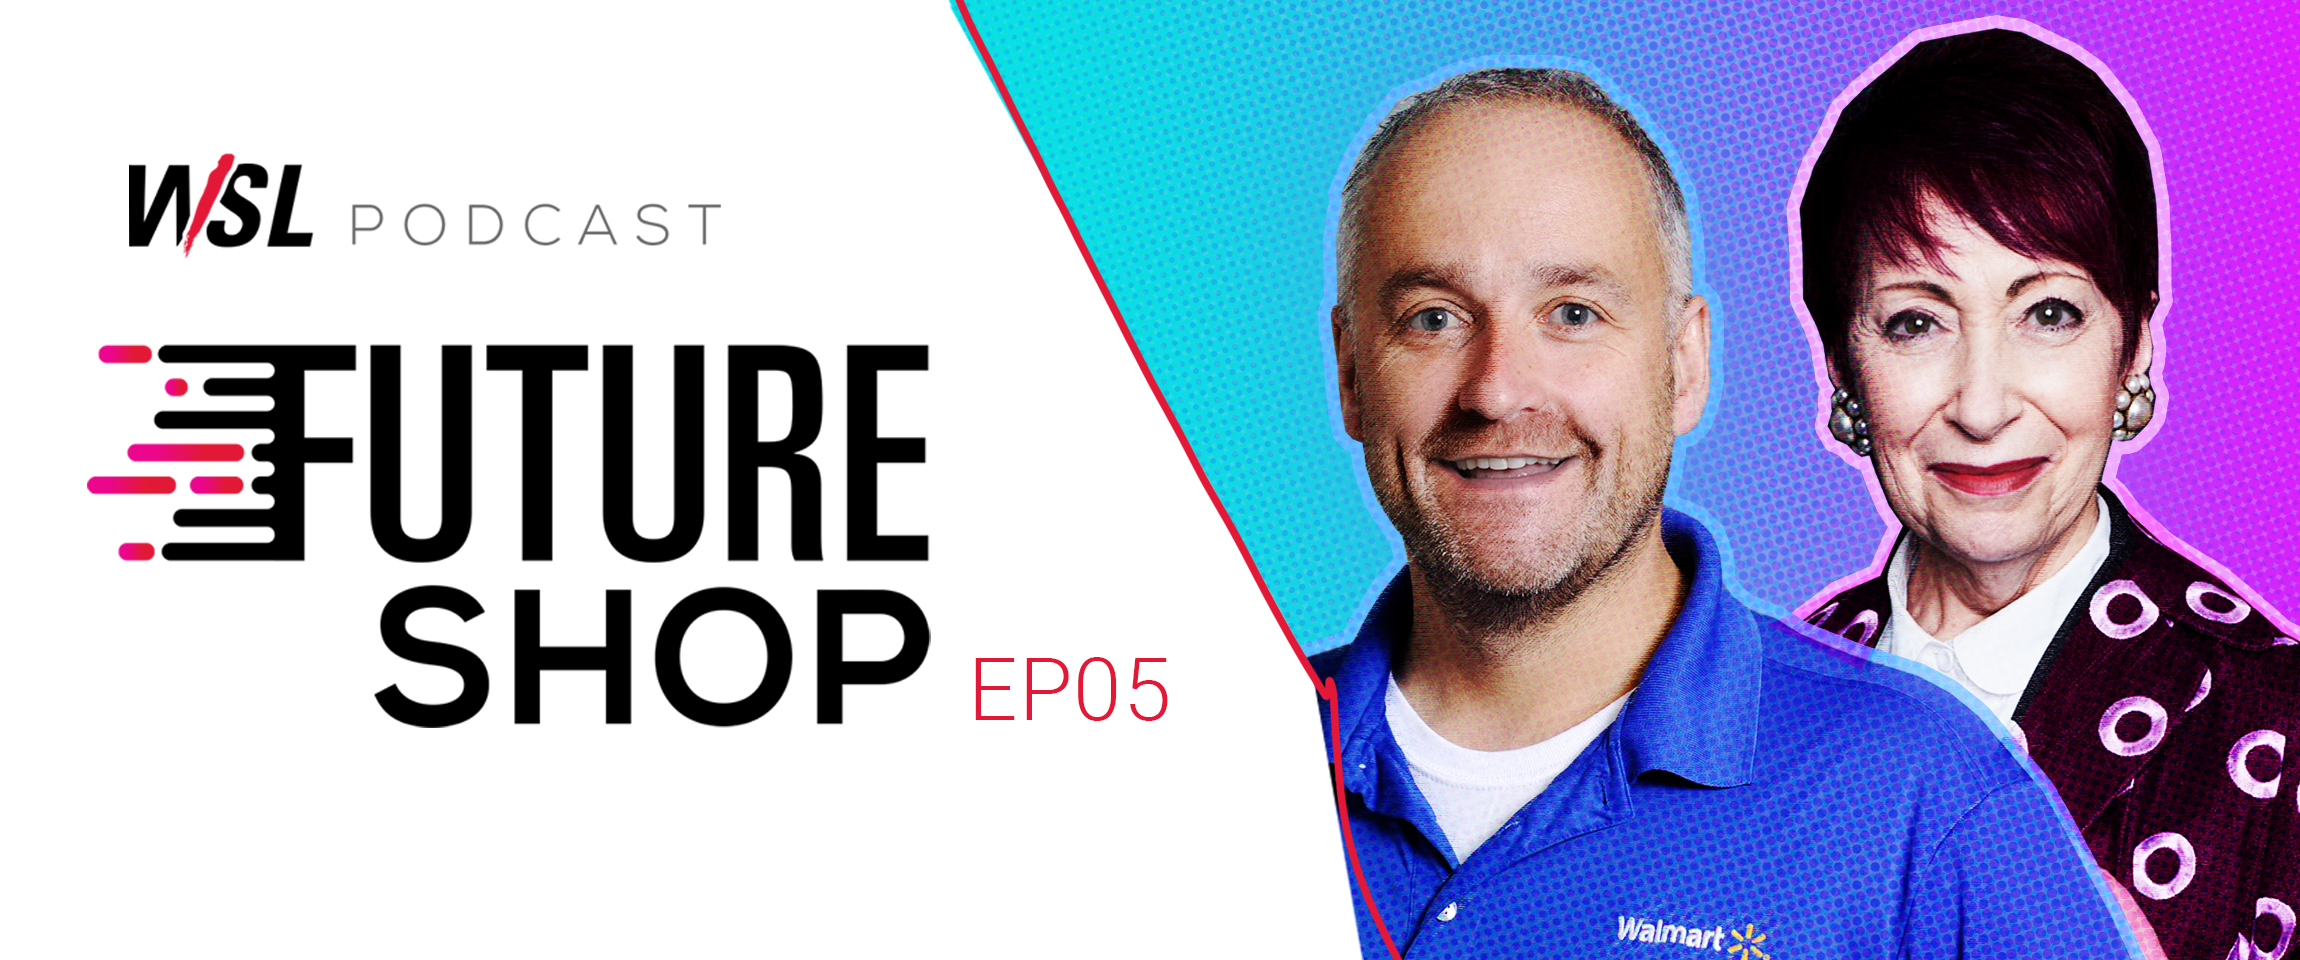 How Walmart is Disrupting Health & Wellness - Future Shop Podcast EP05